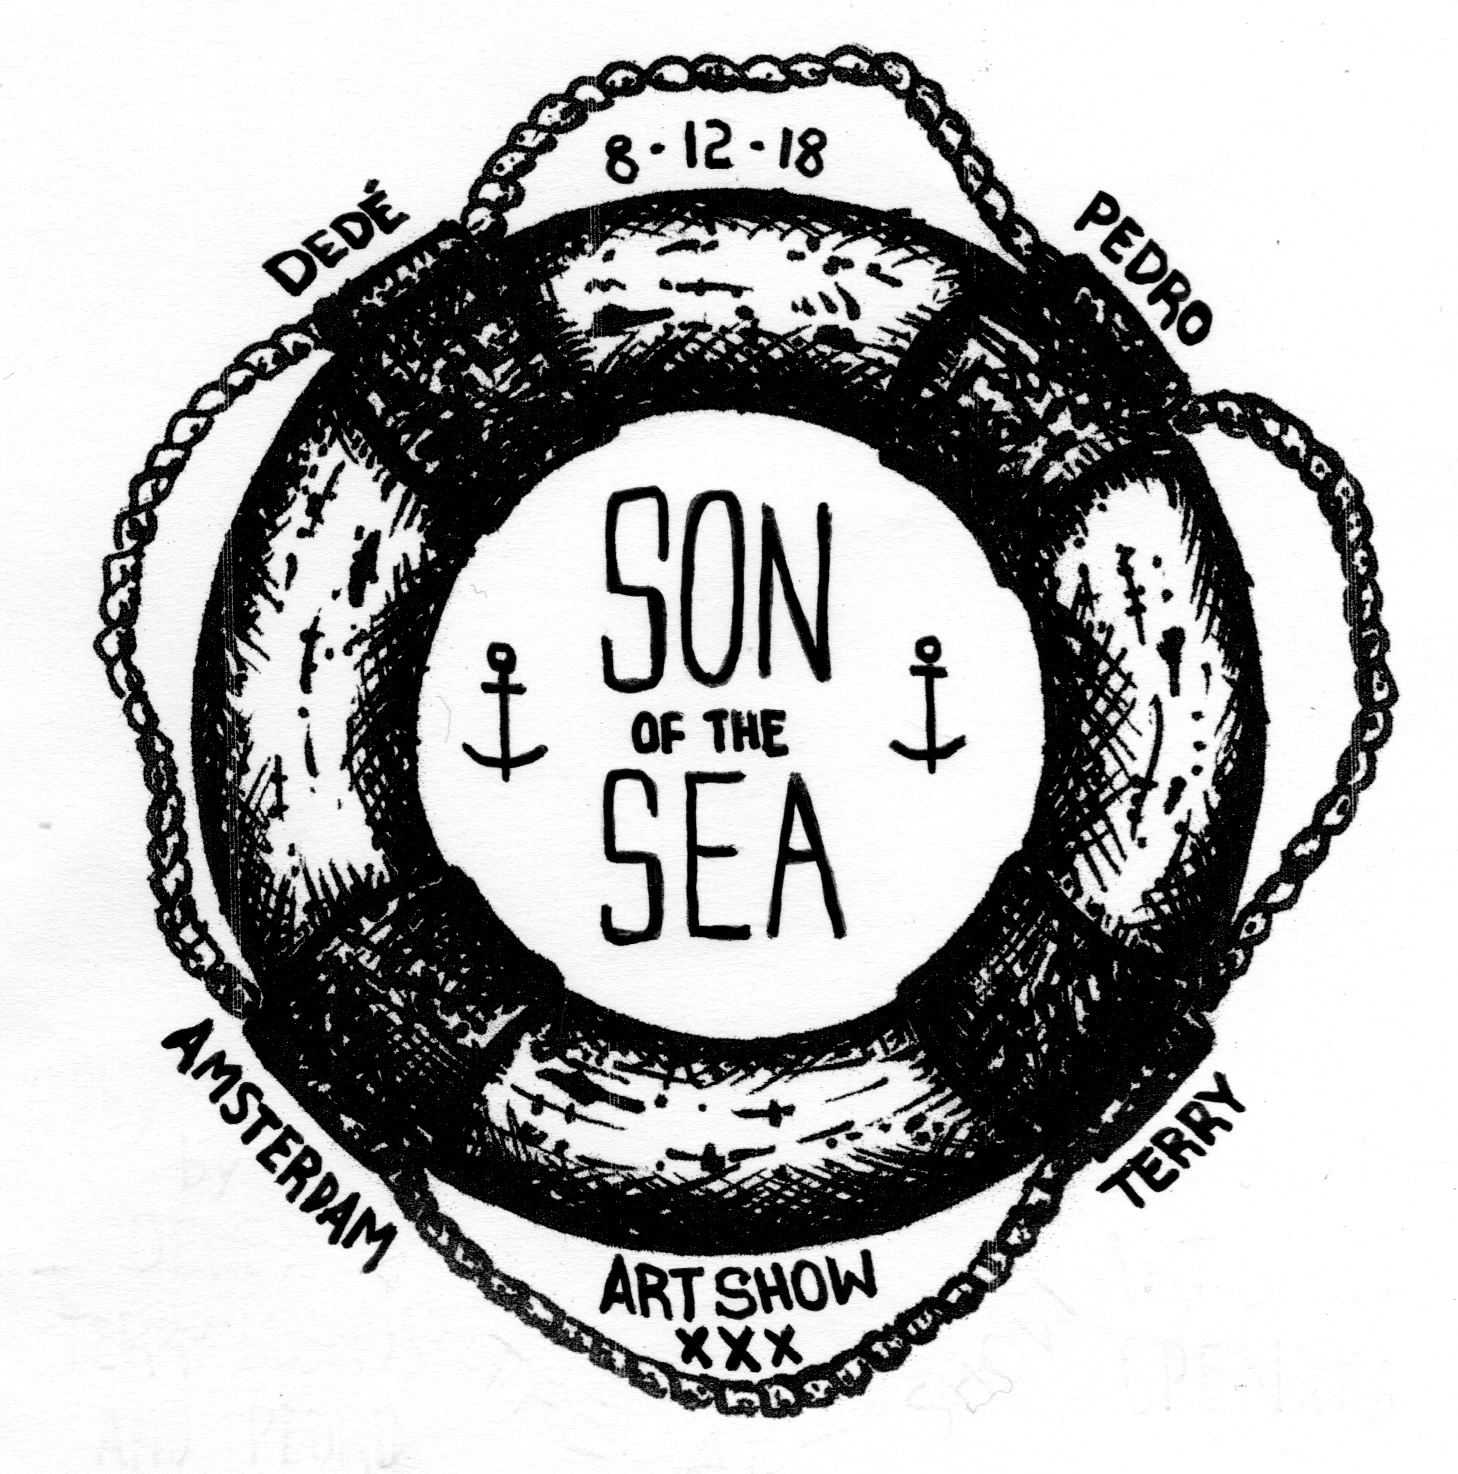 Son of the sea, the art show